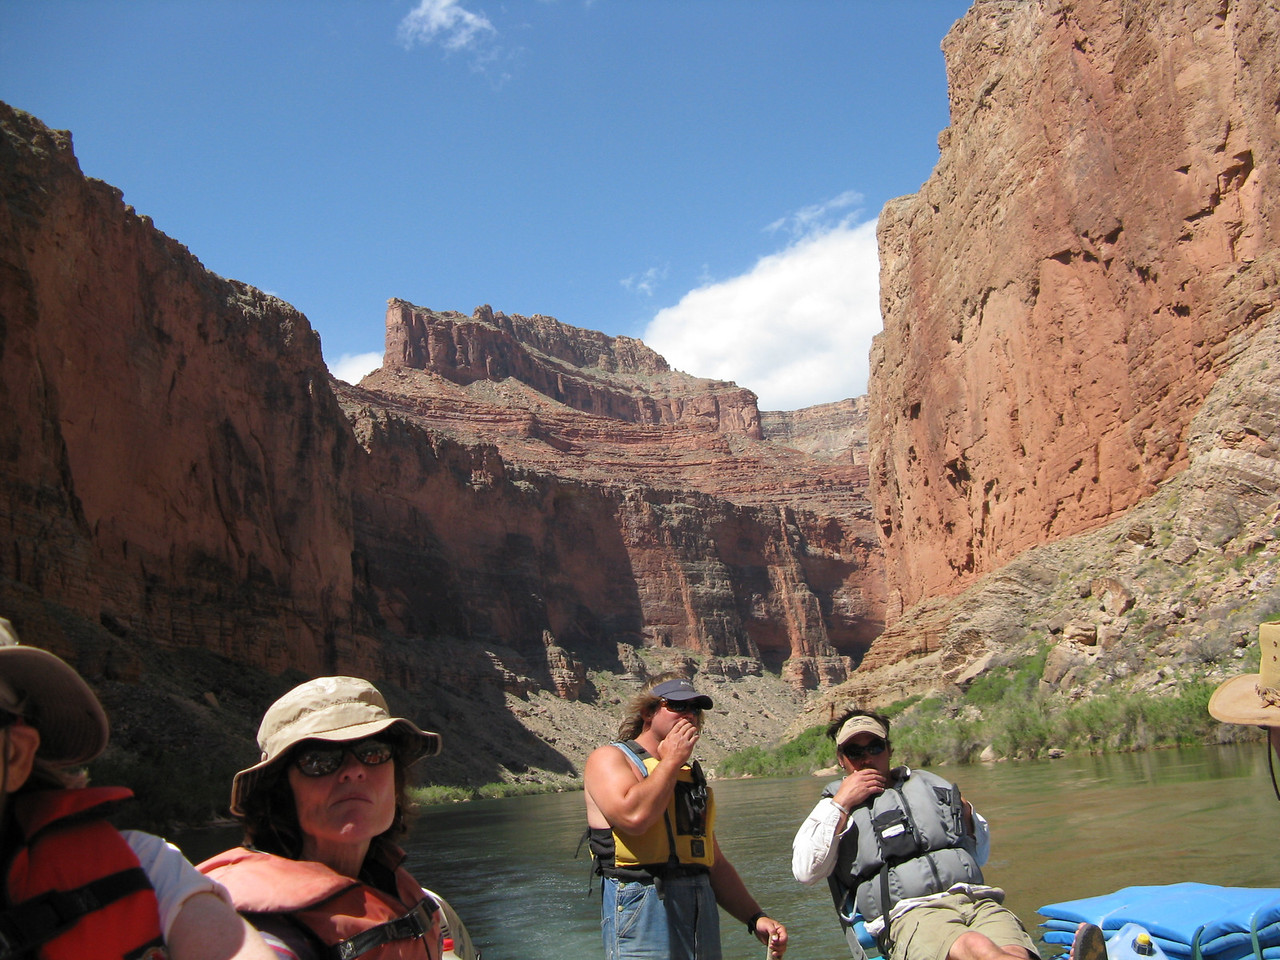 An upstream view with Jake at the tiller.